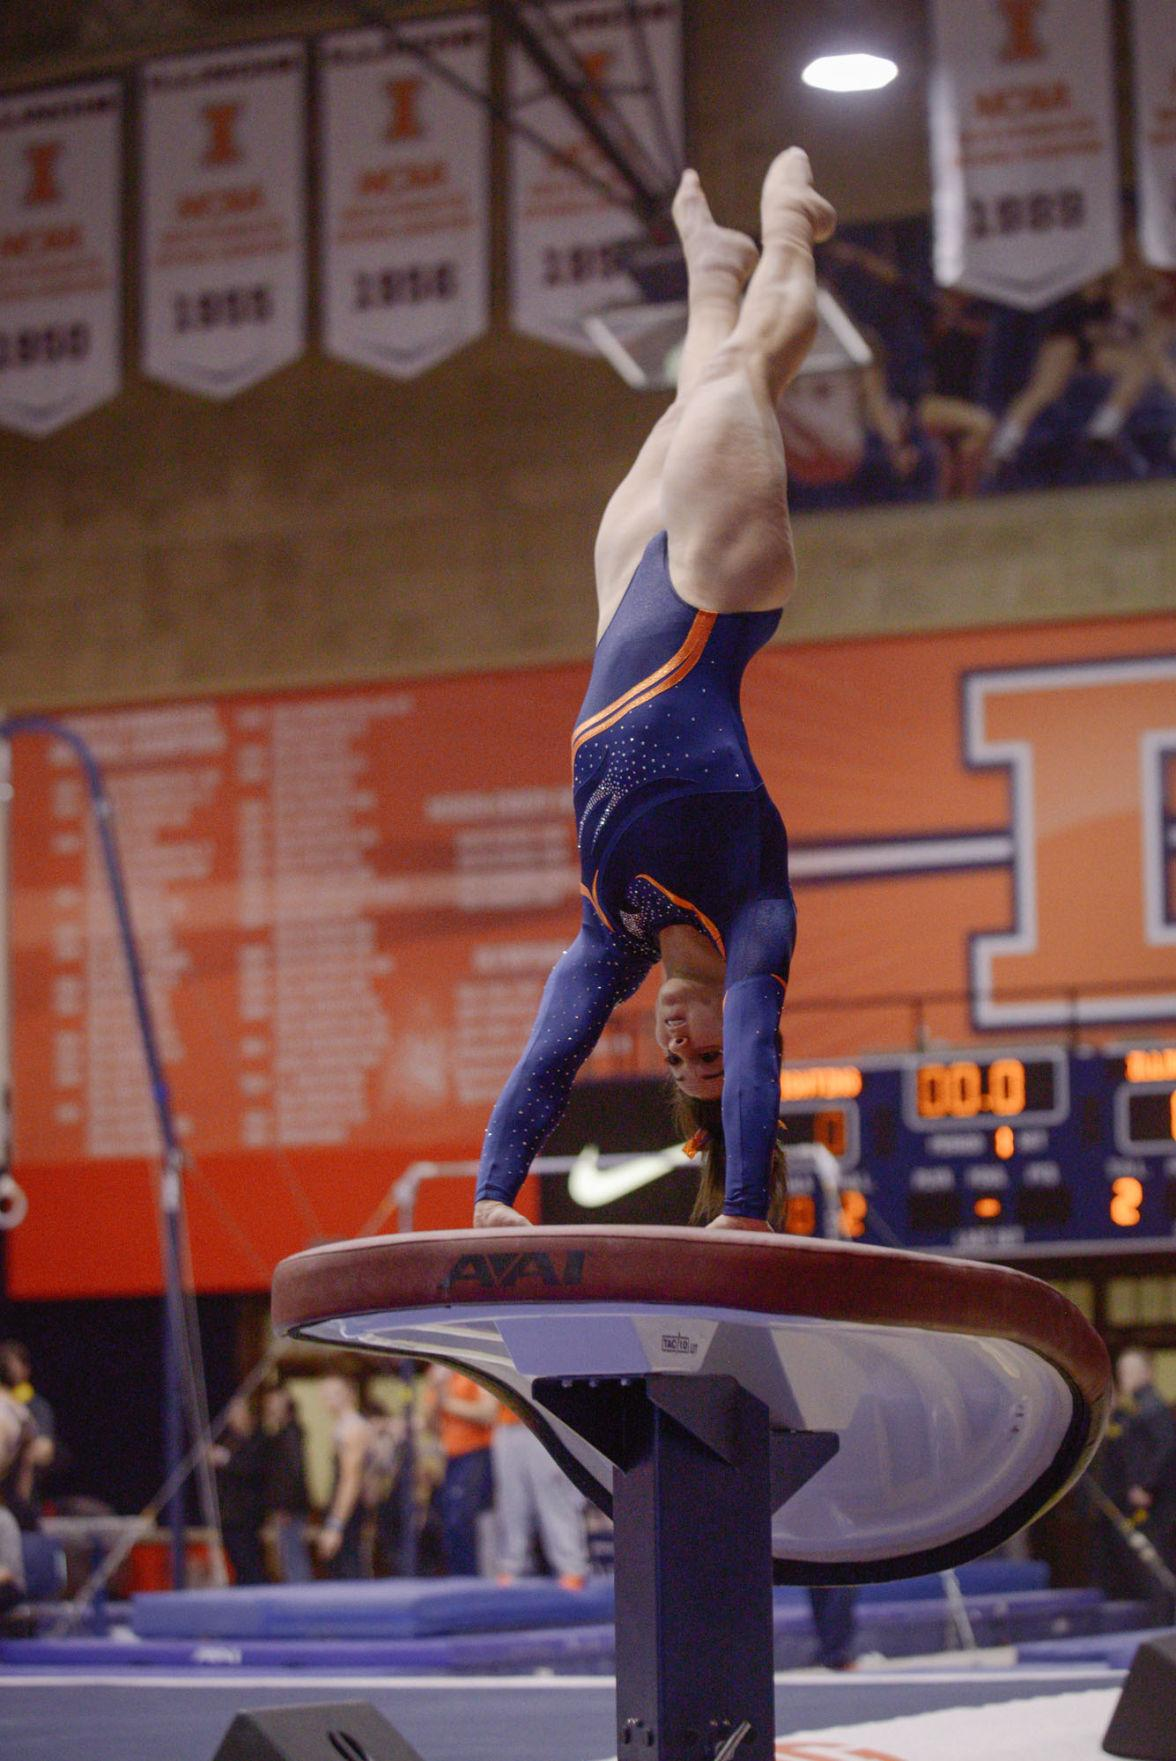 Illinois' Giana O'Connor lifts off from the vault during the meet against Minnesota at Huff Hall on Saturday, Feb. 7. The Illini won 195.775-195.375.